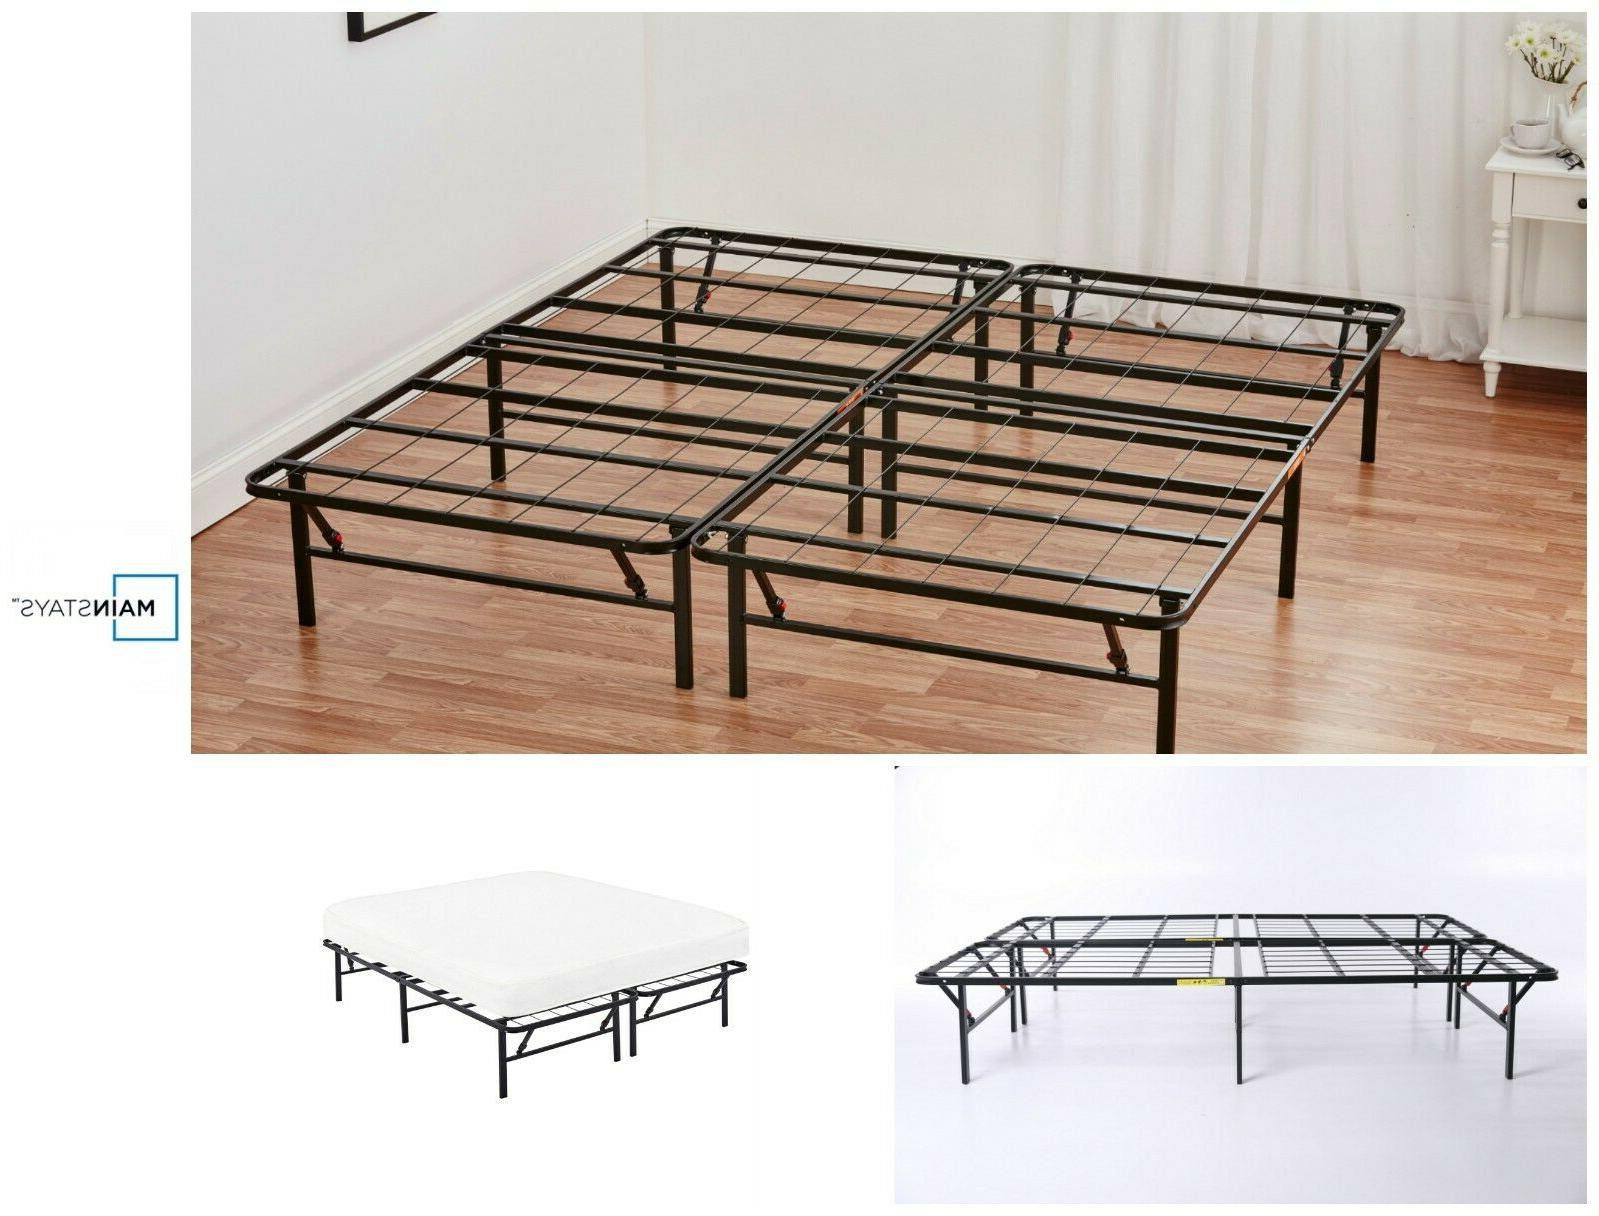 Platform Queen Size Bed Frame 14 Inch Storable Foldable Meta